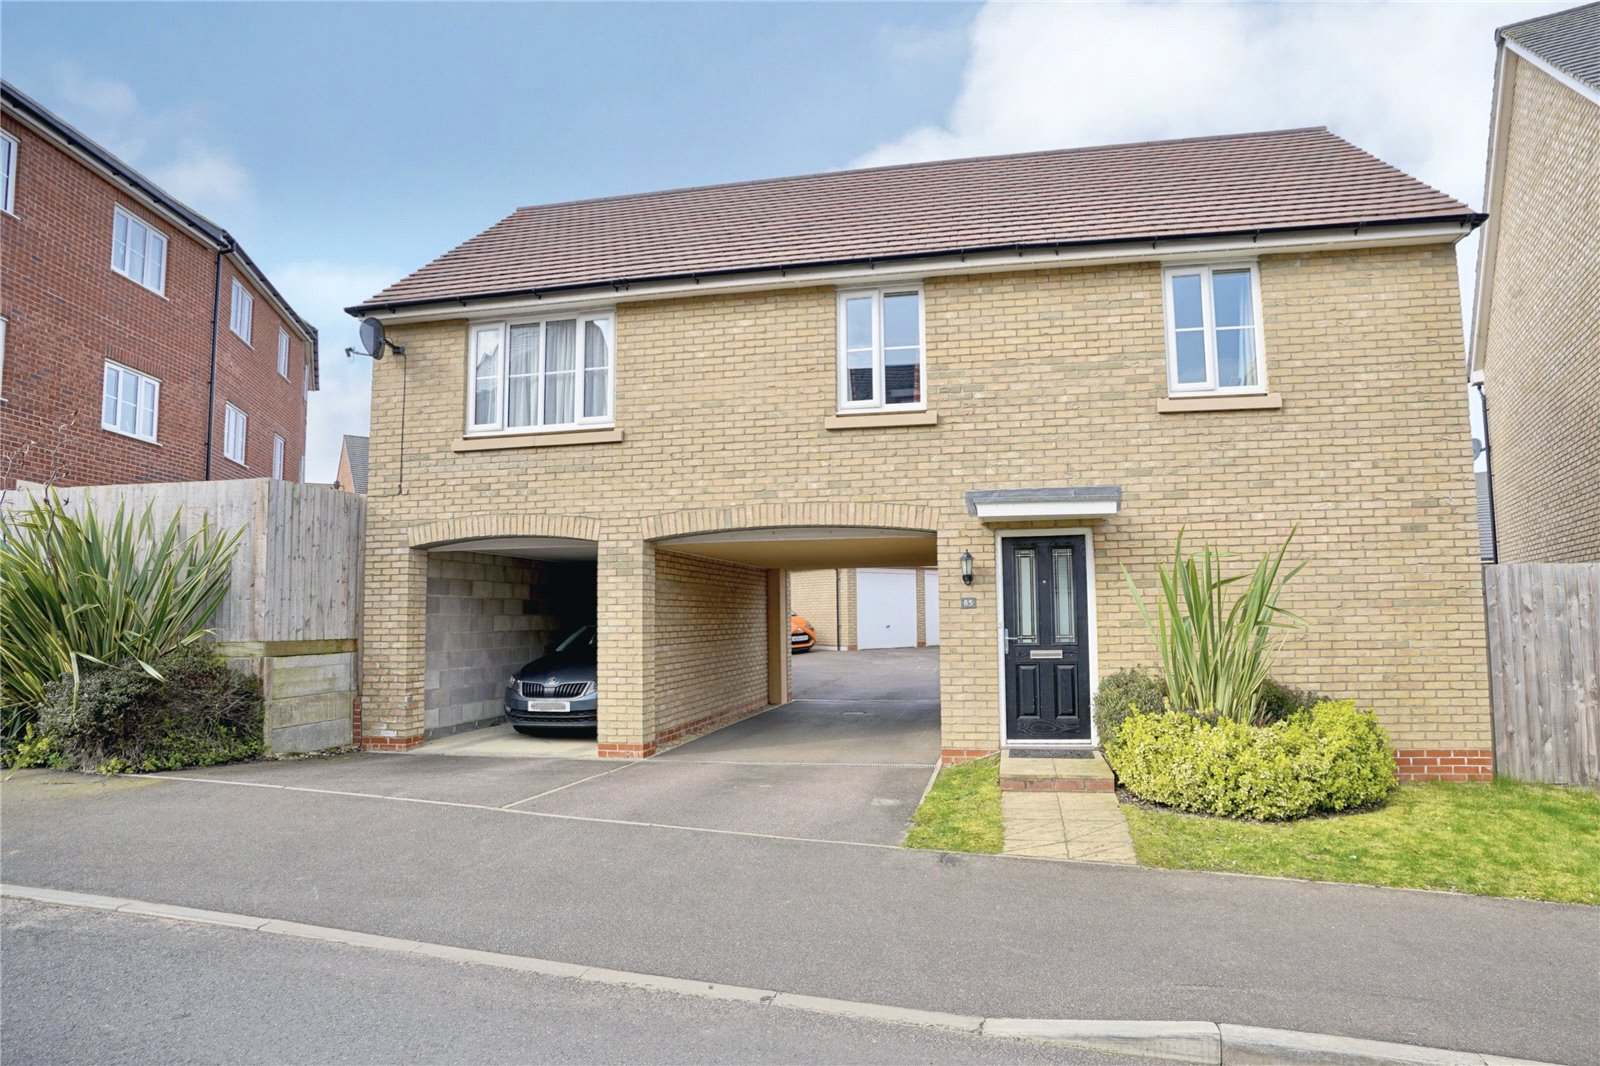 2 bed apartment for sale in Papworth Everard, CB23 3AB, CB23